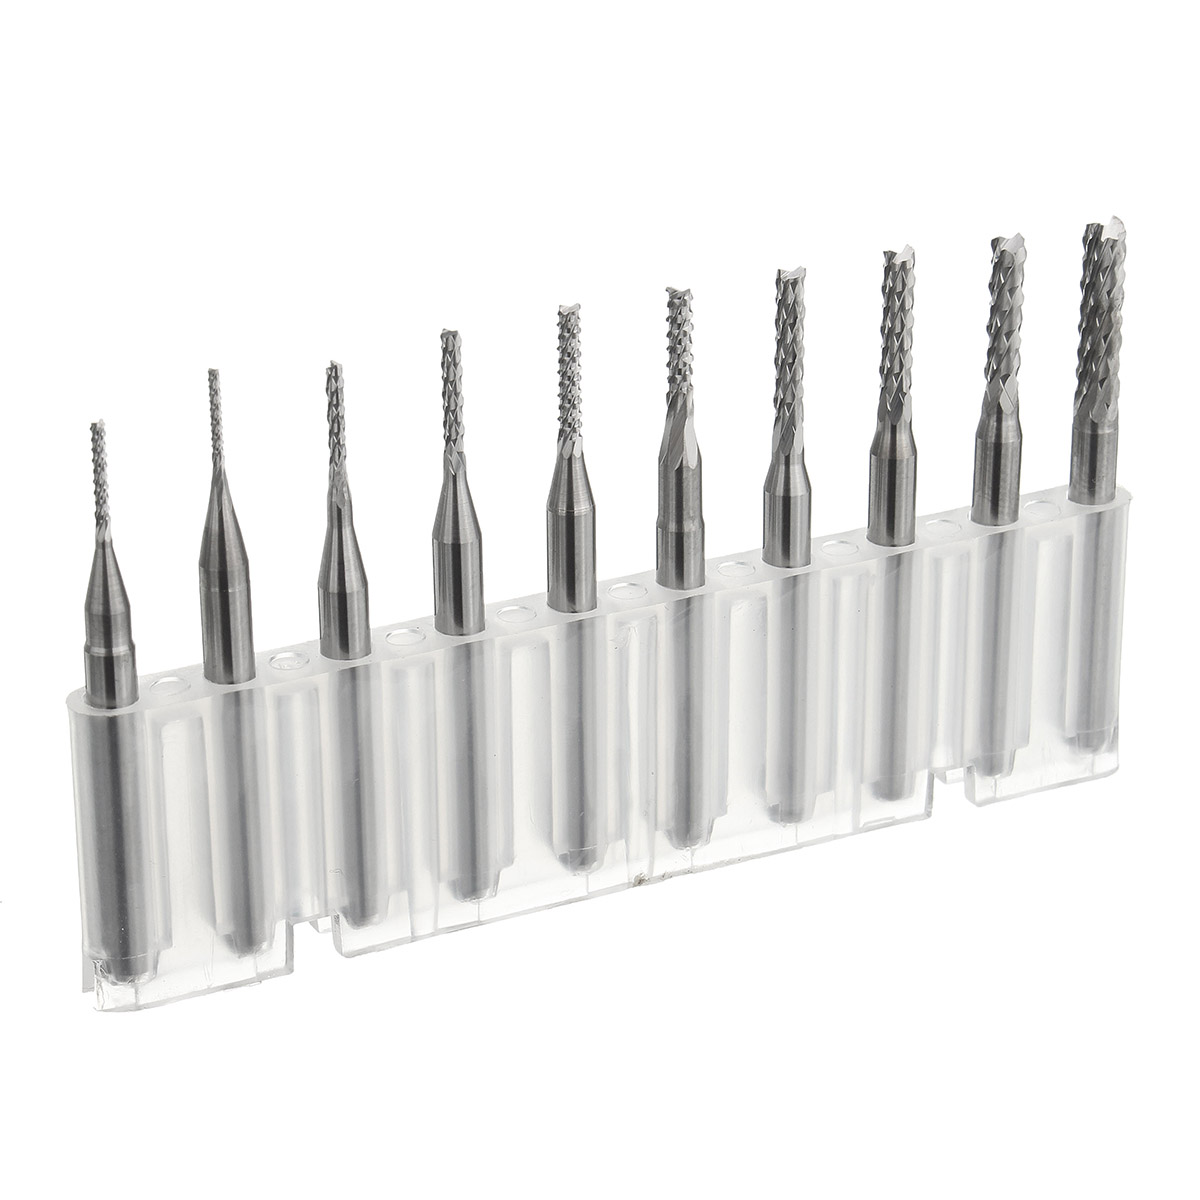 10pcs/set 1/8 Inch 0.8-3.175mm PCB Engraving Cutter Rotary CNC End Mill Drill Bit Bits Hot Sale 10pcs box 1 8 inch 0 8 3 17mm pcb engraving cutter rotary cnc end mill 0 8 1 0 1 2 1 4 1 6 1 8 2 0 2 2 2 4 3 17mm